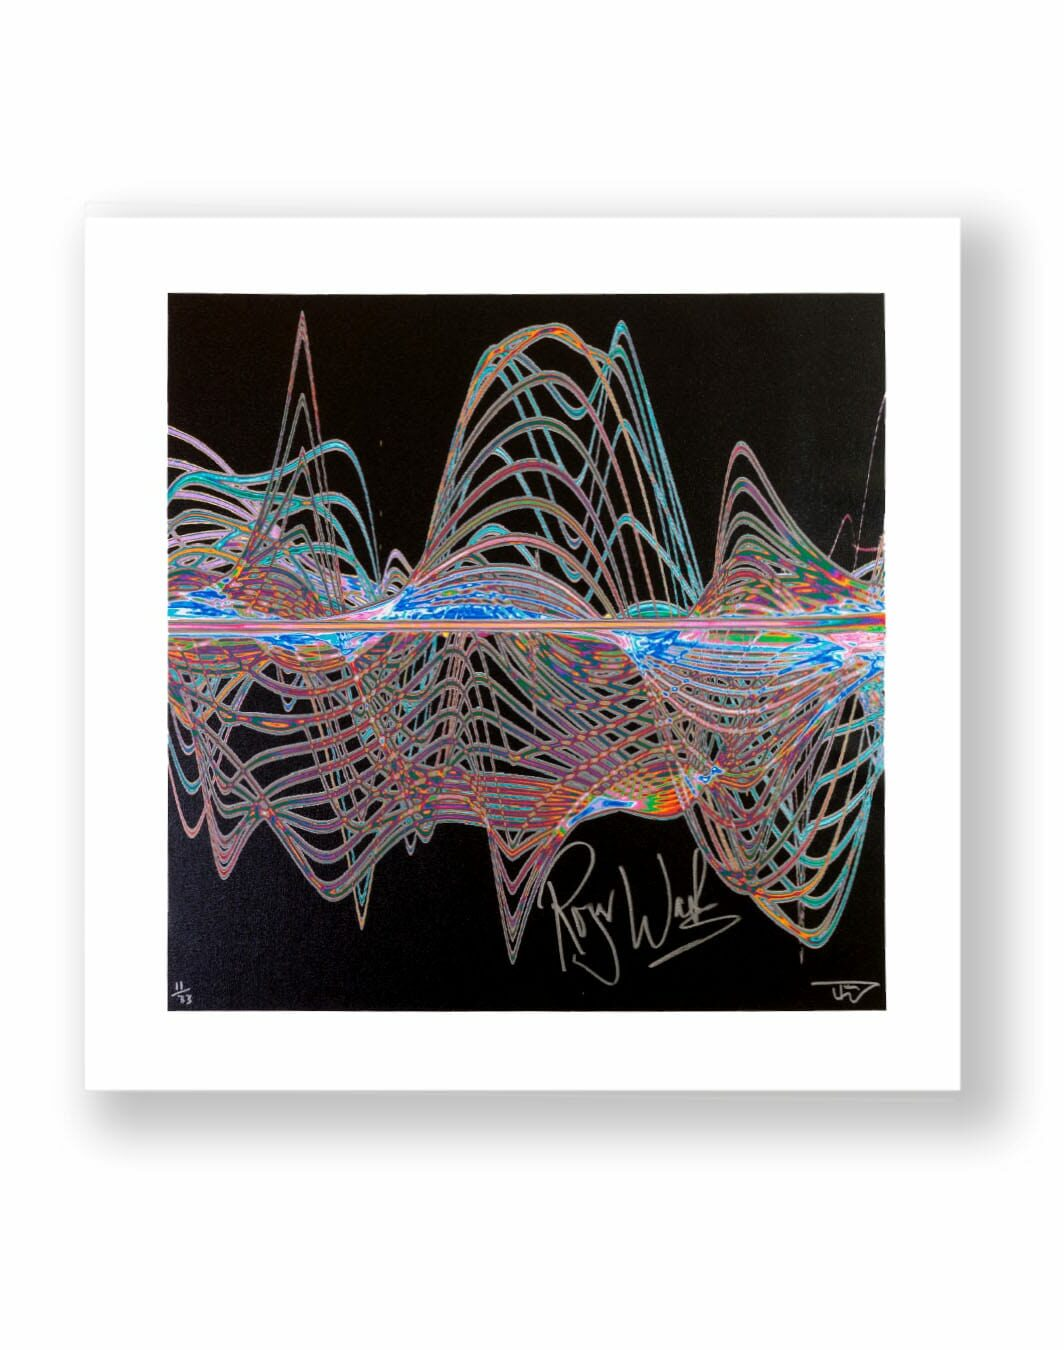 roger water signed print